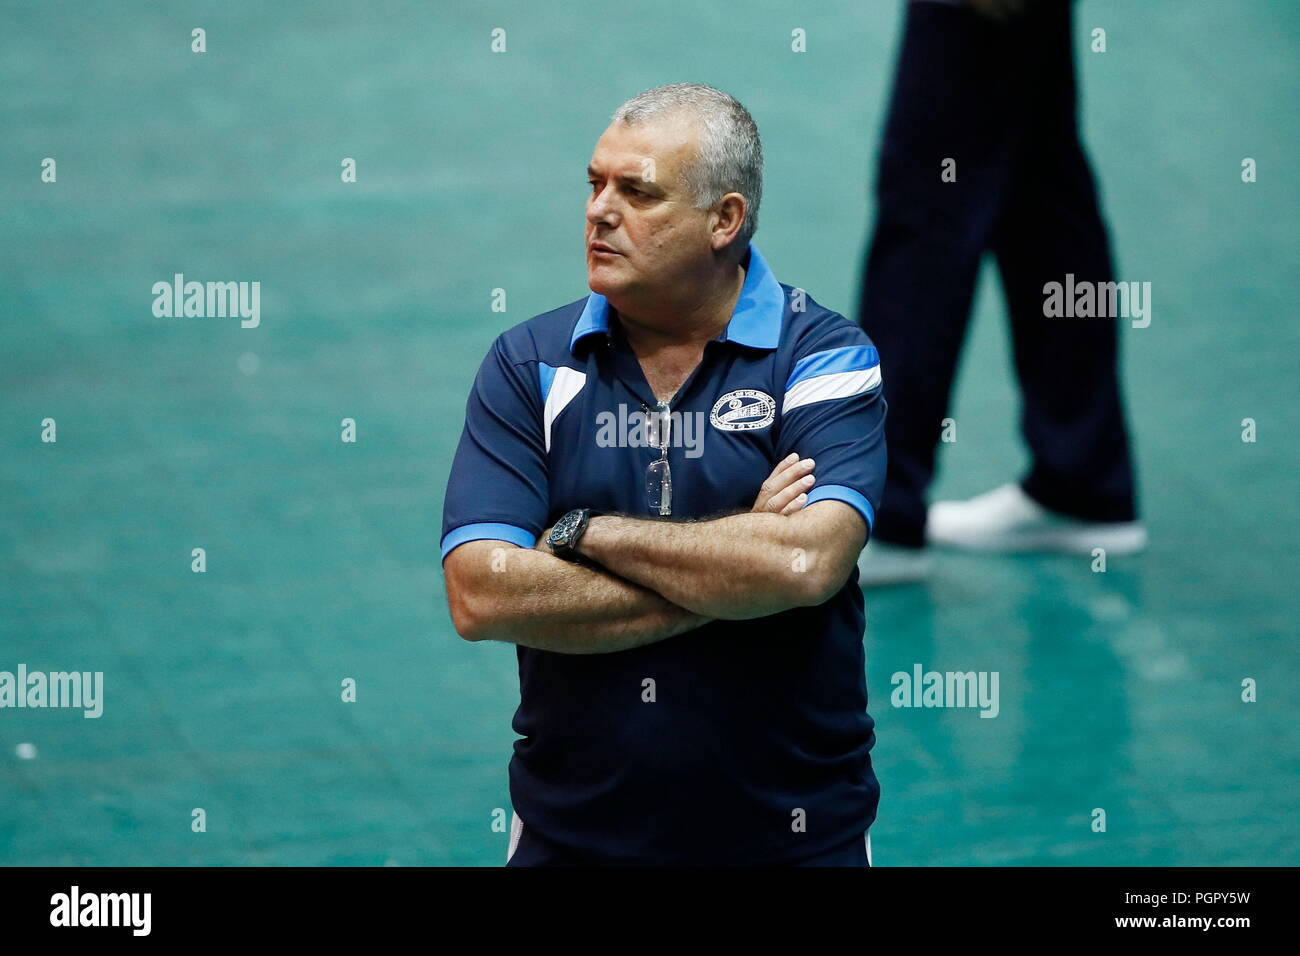 689b26dde Guatemala's coach Reider Lucas look on during a Men's Panamerican Cup match  played between Mexico and Guatemala, in Cordoba, Mexico, 28 August 2018.